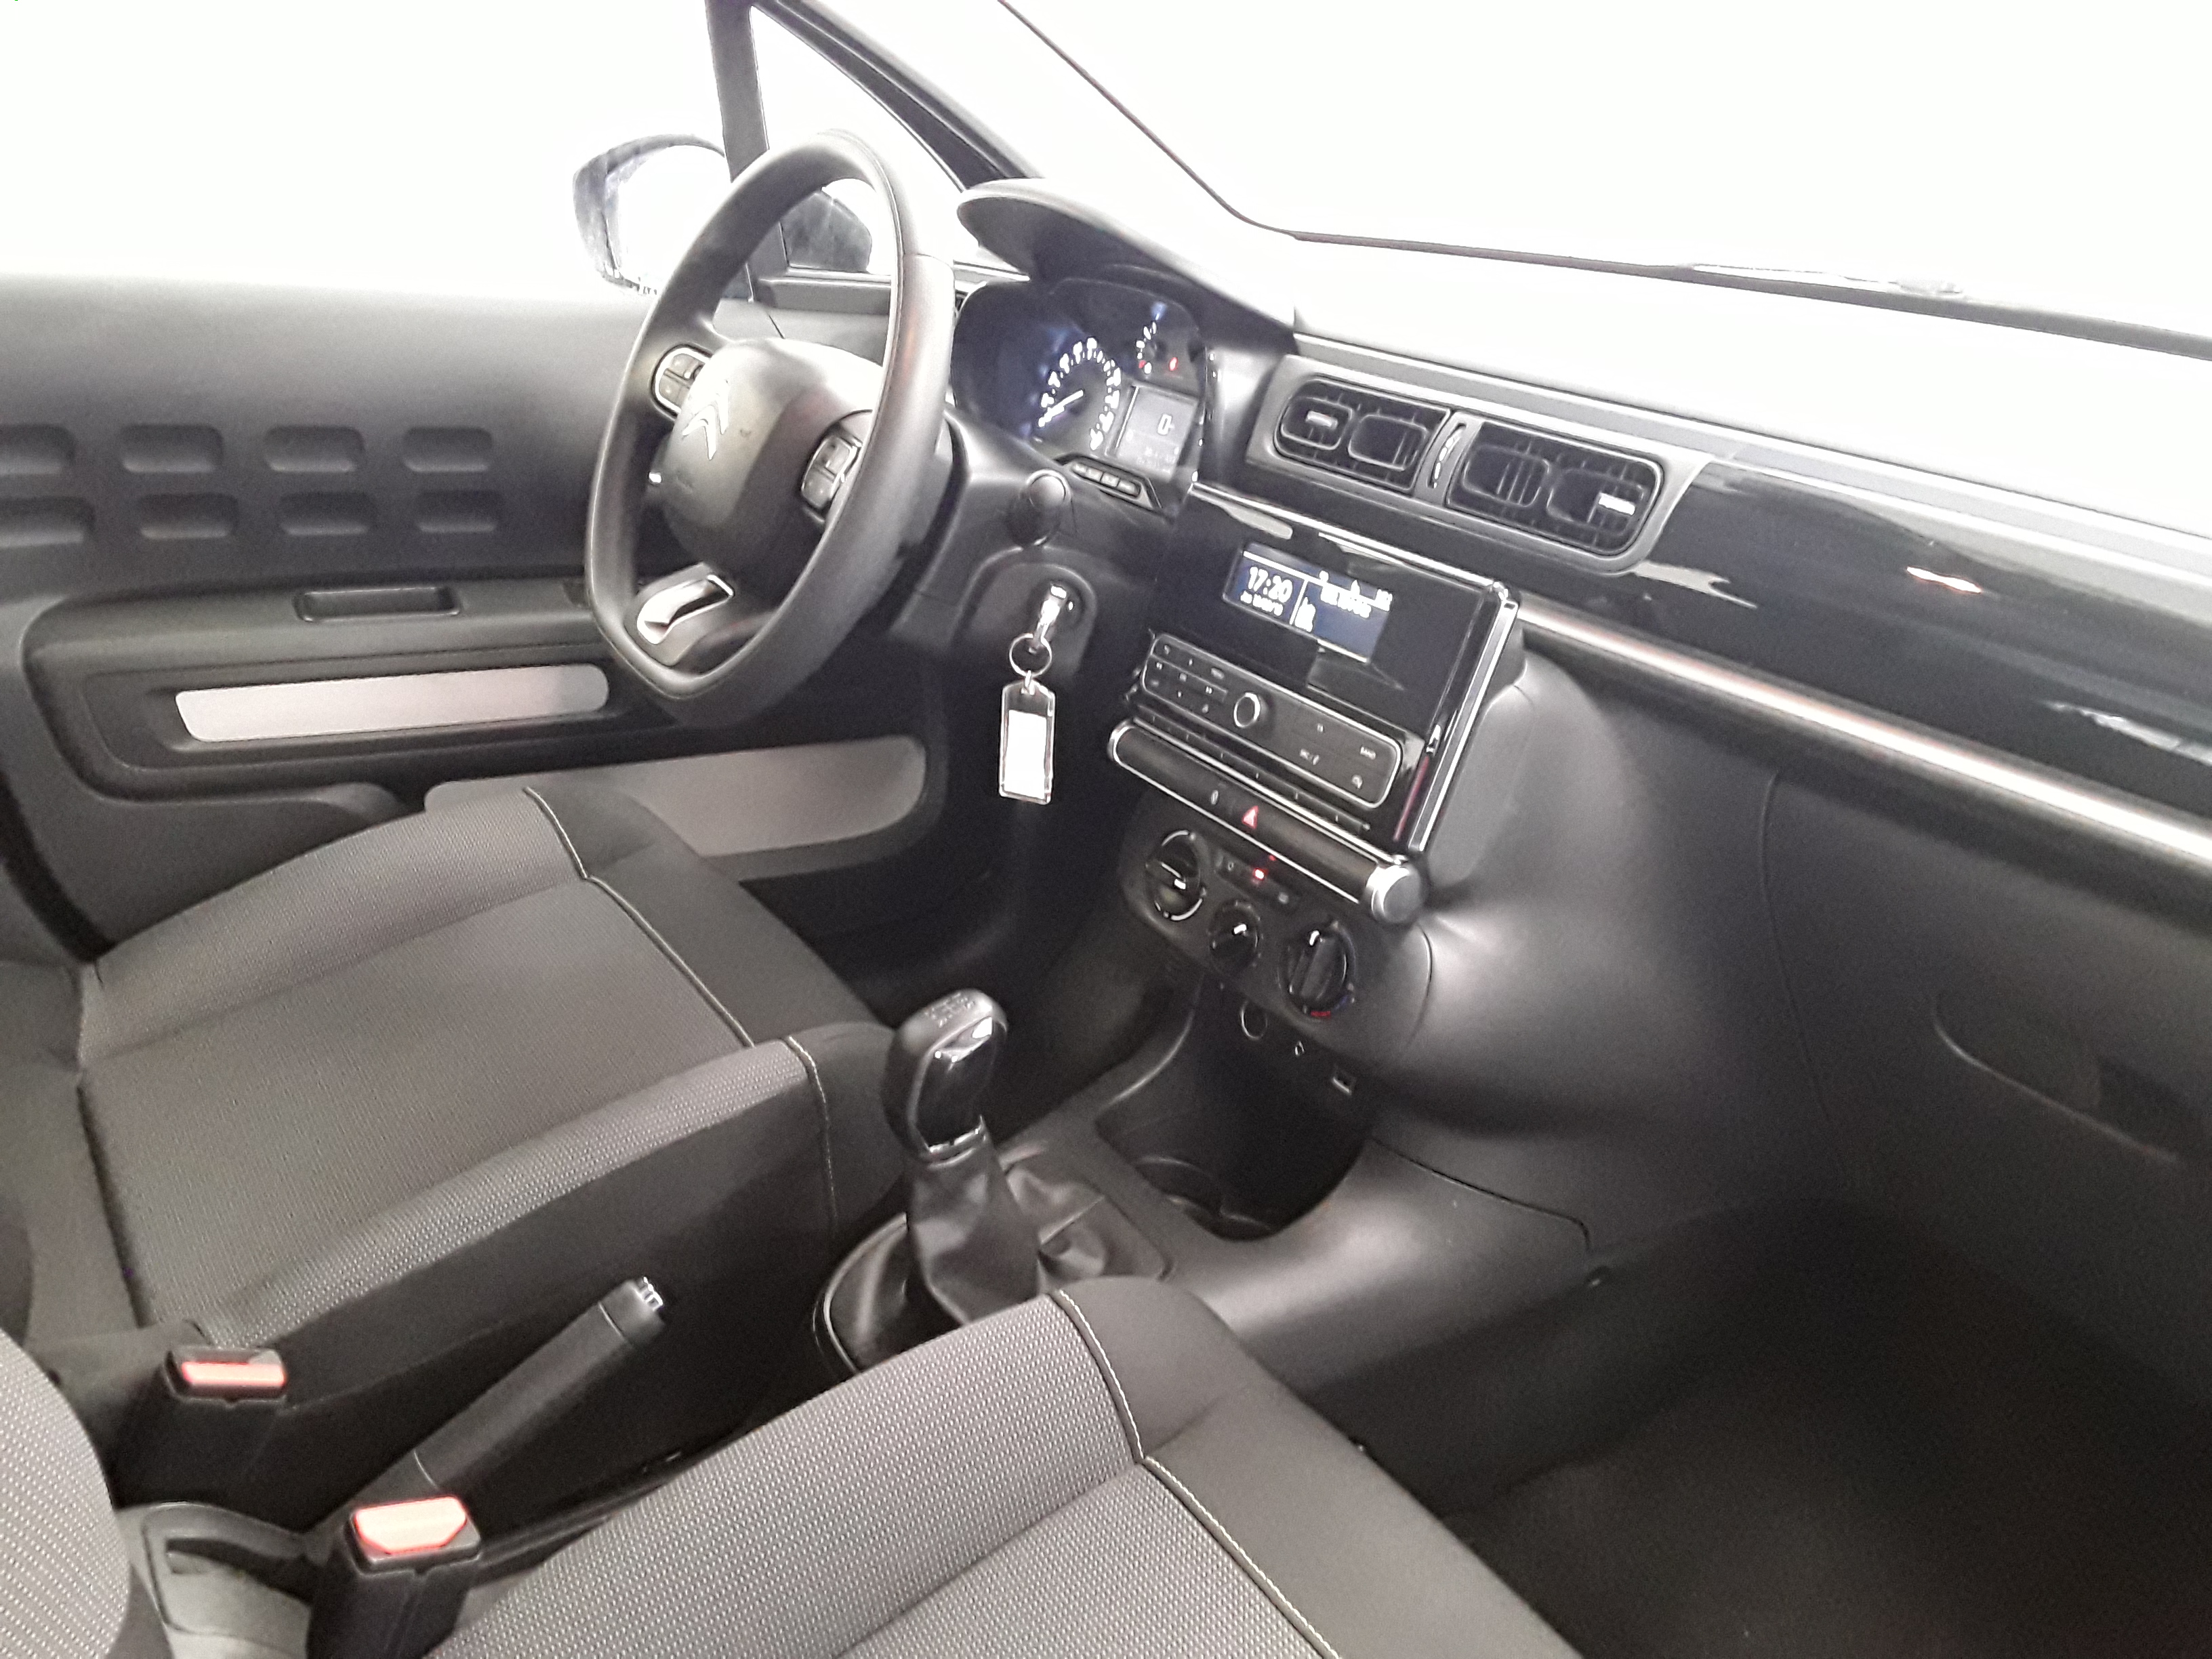 CITROEN C3 BUSINESS 2017 à 9900 € - Photo n°7